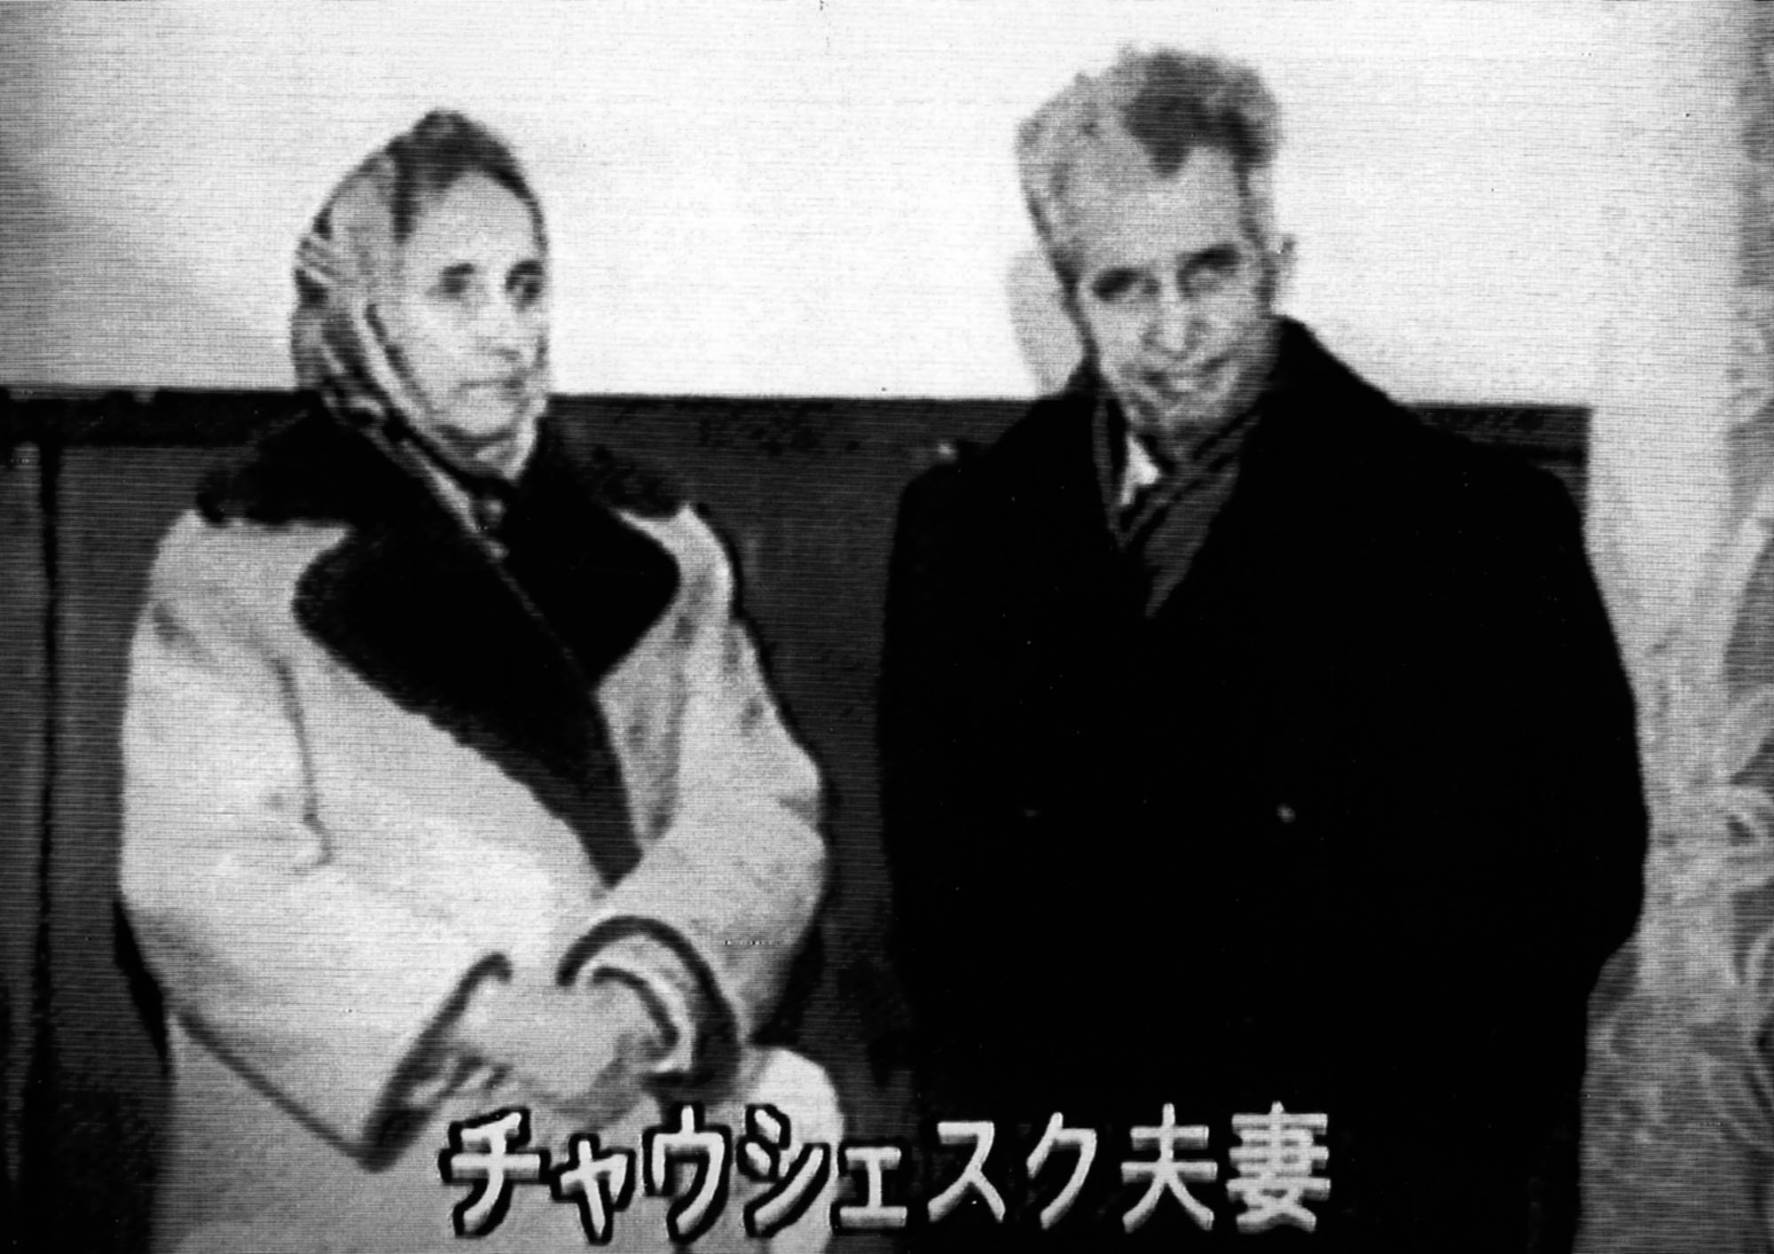 CEAUSESCU AND HIS WIFE SHORTLY BEFORE EXECUTION - Outsted Romanian President Nicolae Ceausescu and his wife, Elena, are shown in this picture taken from the Japan Broadcasting Corp.'TV Tuesday, Dec. 26, 1989. It said the film was taken shortly before their execution on Dec. 25, 1989, after a secret military trial. (AP-Photo)